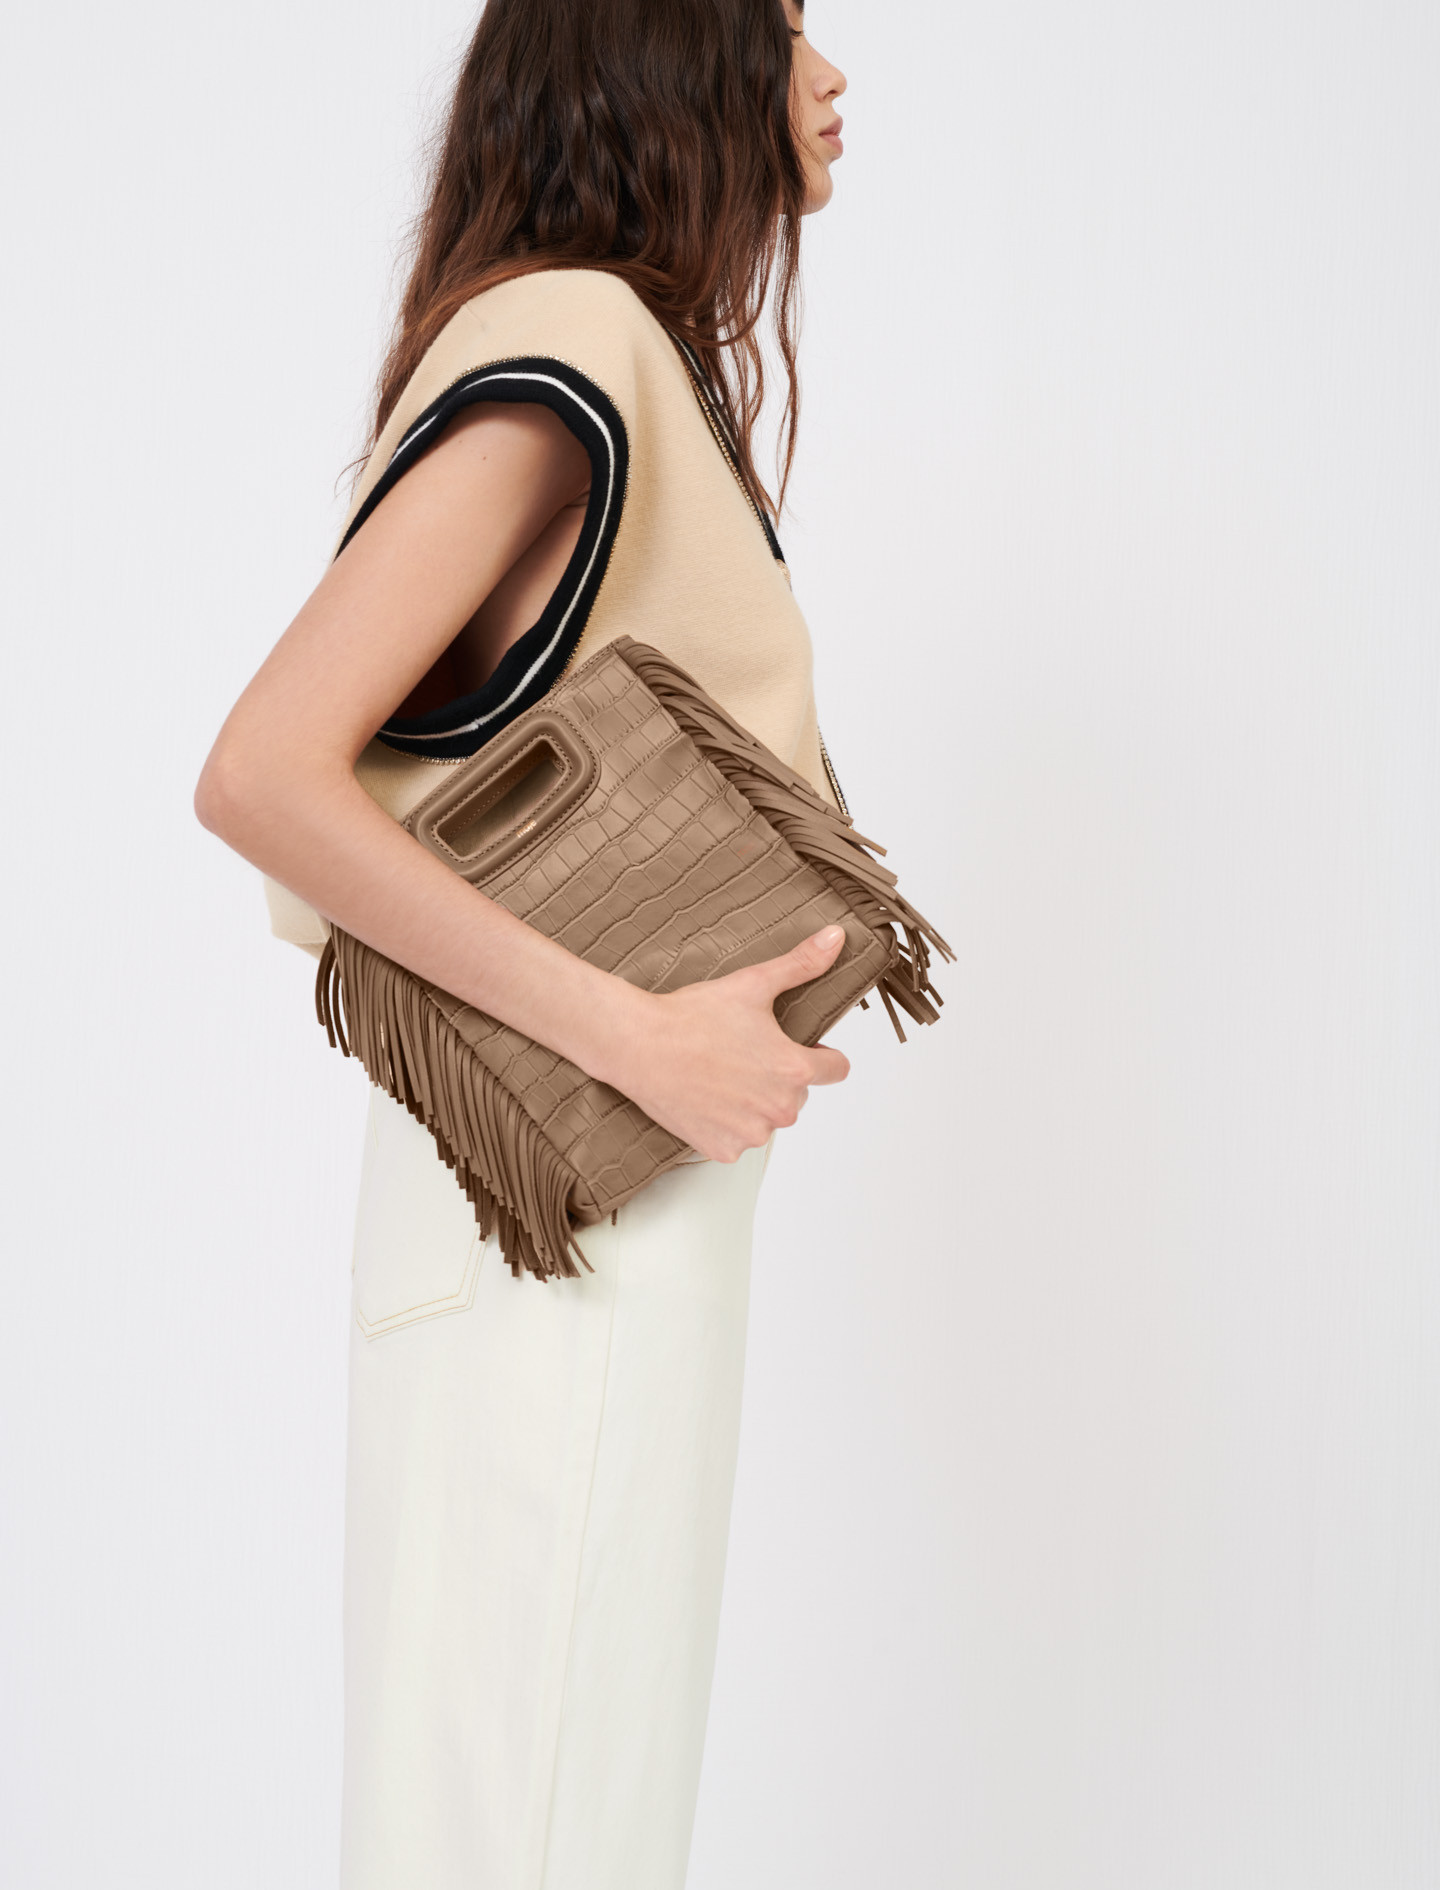 Maje M bag in taupe with fringe